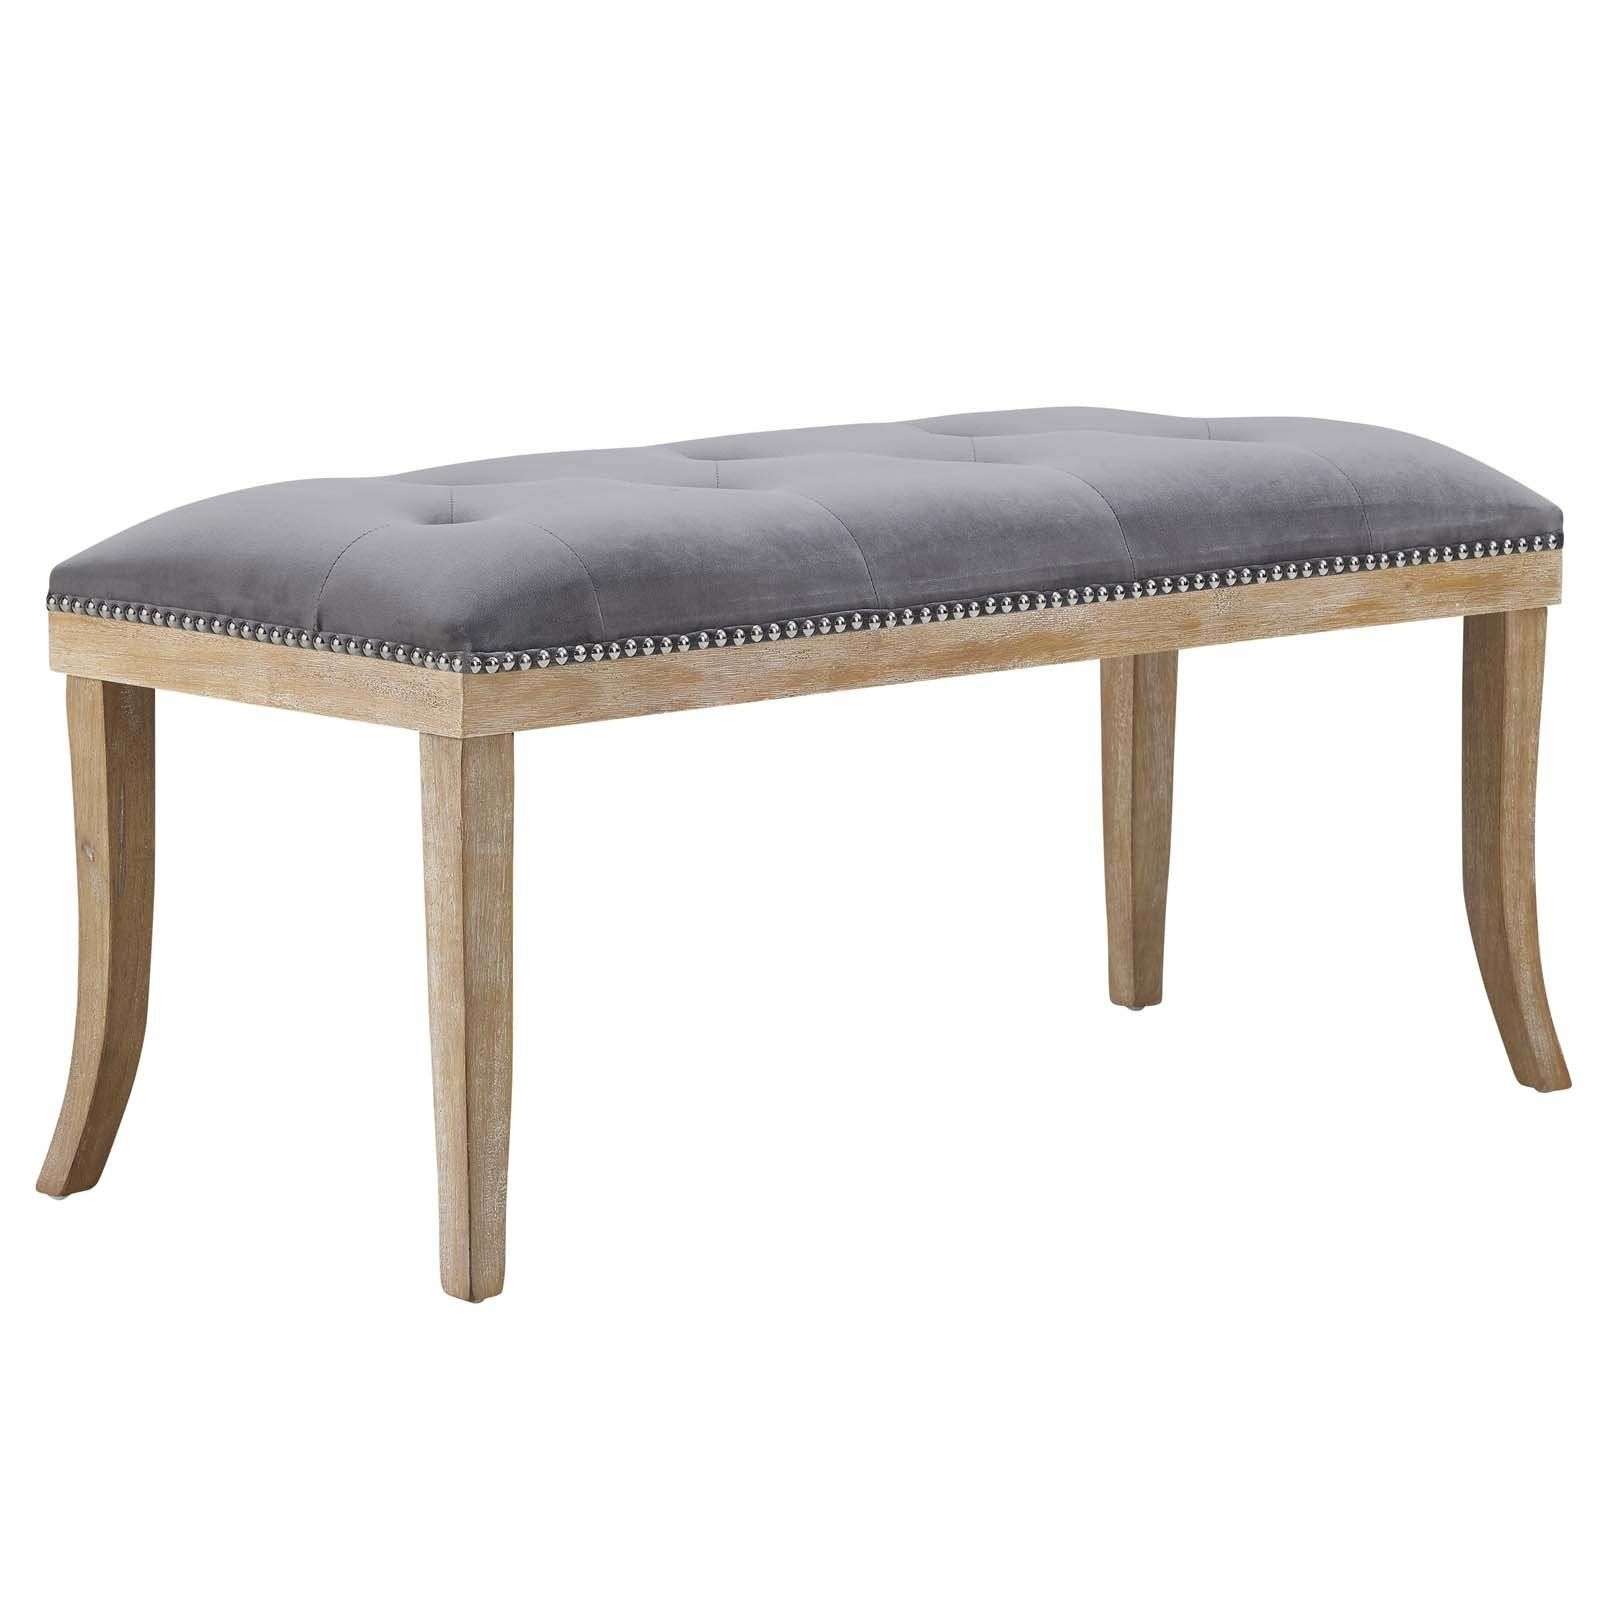 Regal Vintage French Upholstered Fabric Bench Edlyn Upholstered Fabric Bench In 2019 Kitchen Ideas